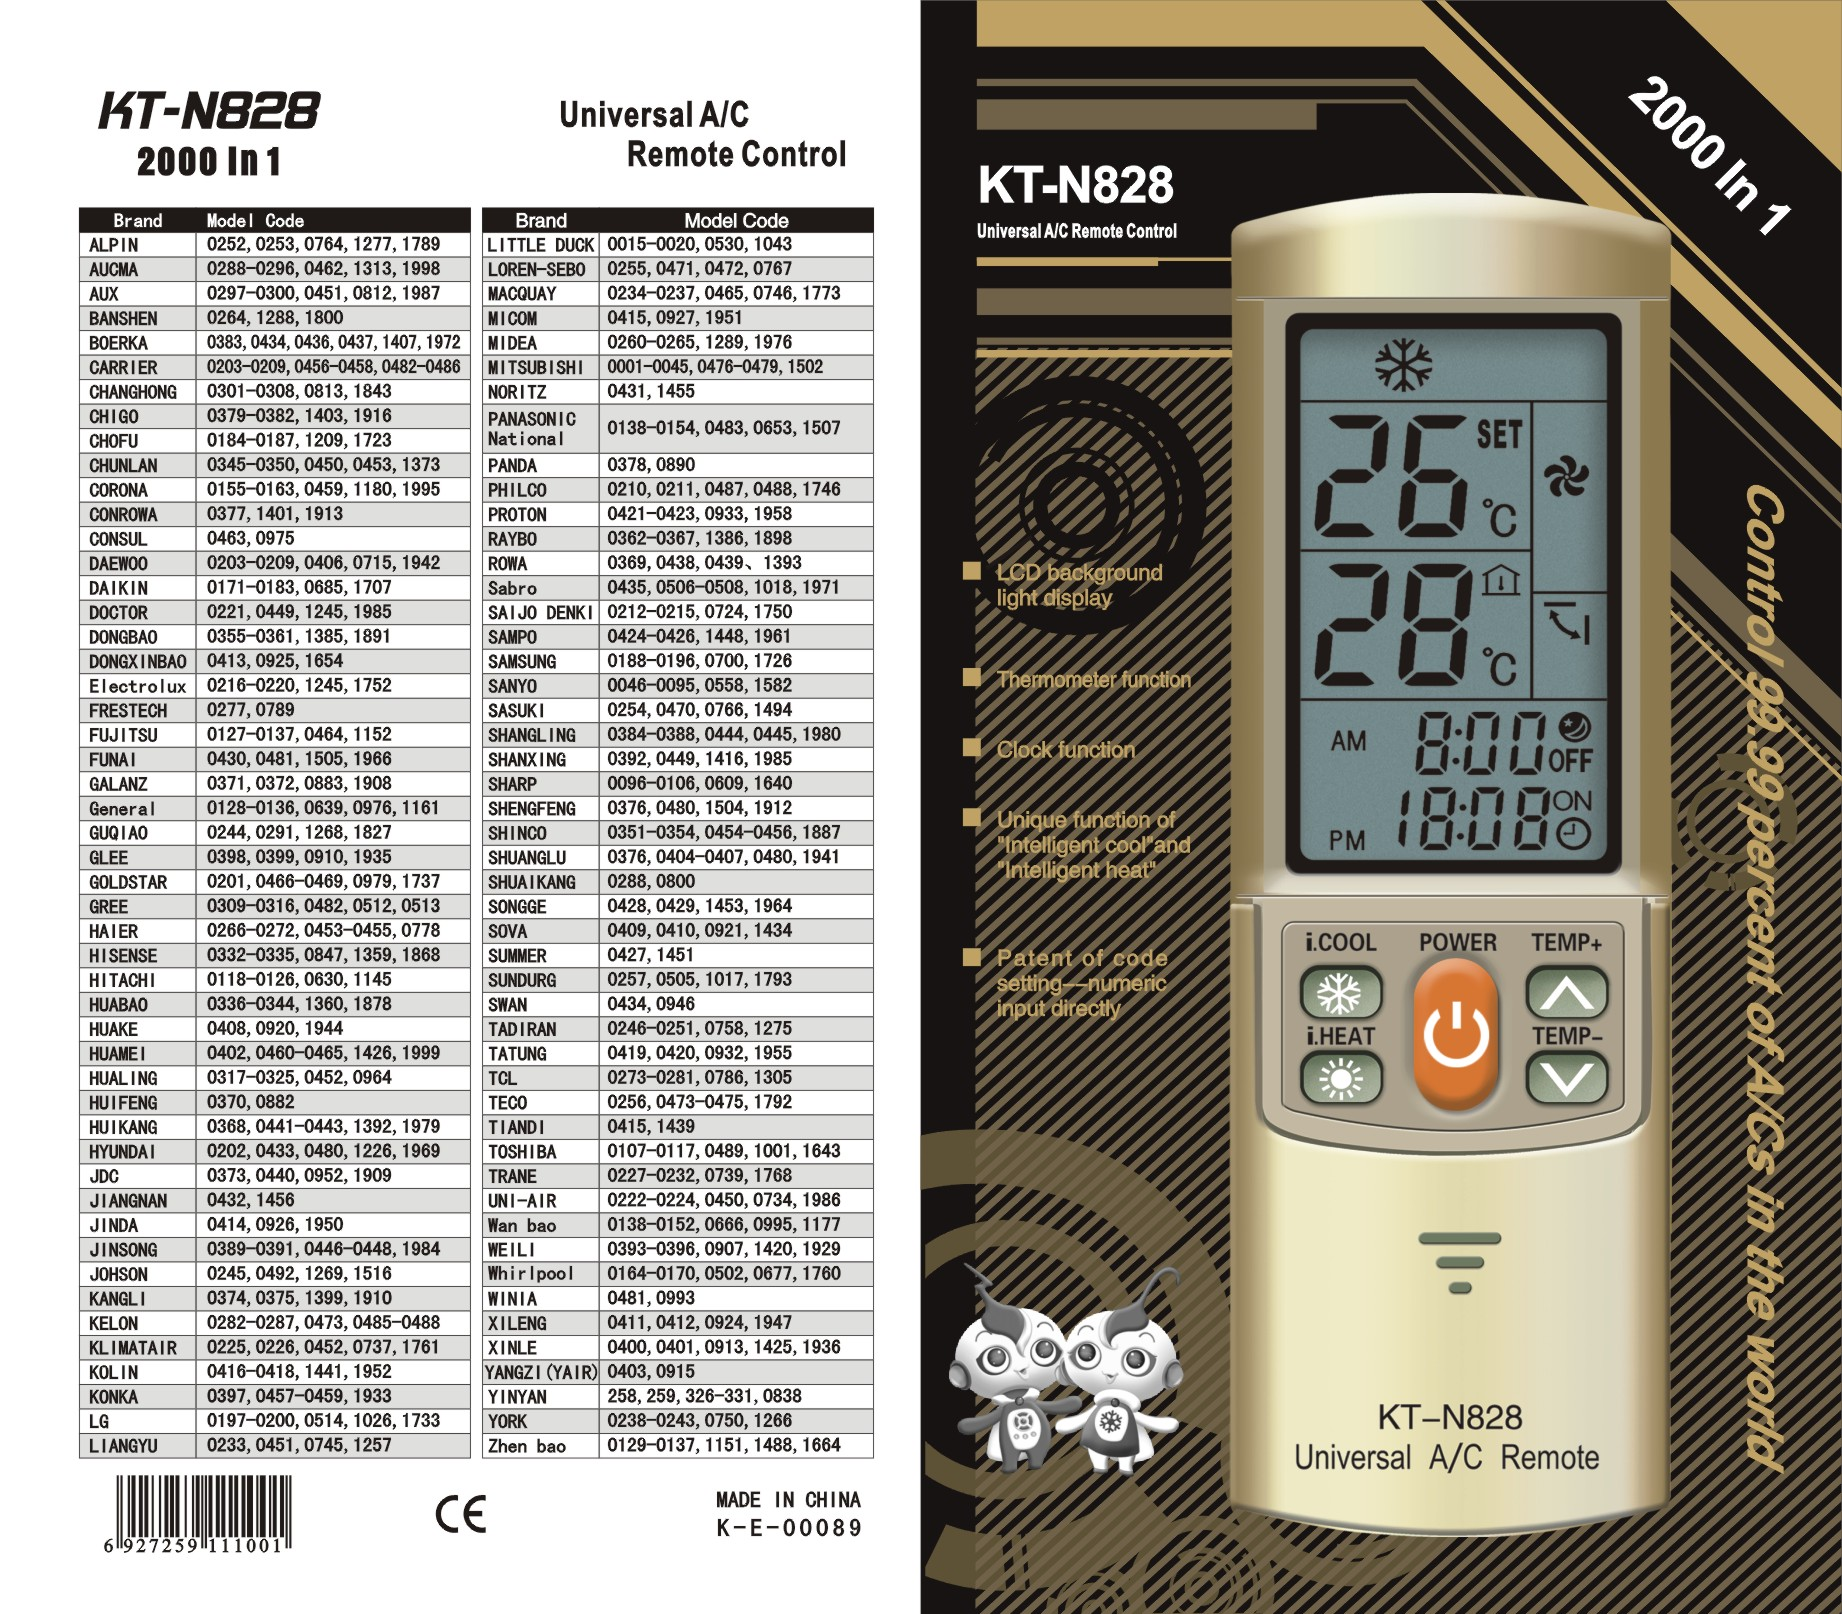 Air conditioner Remote control (KT-N828)